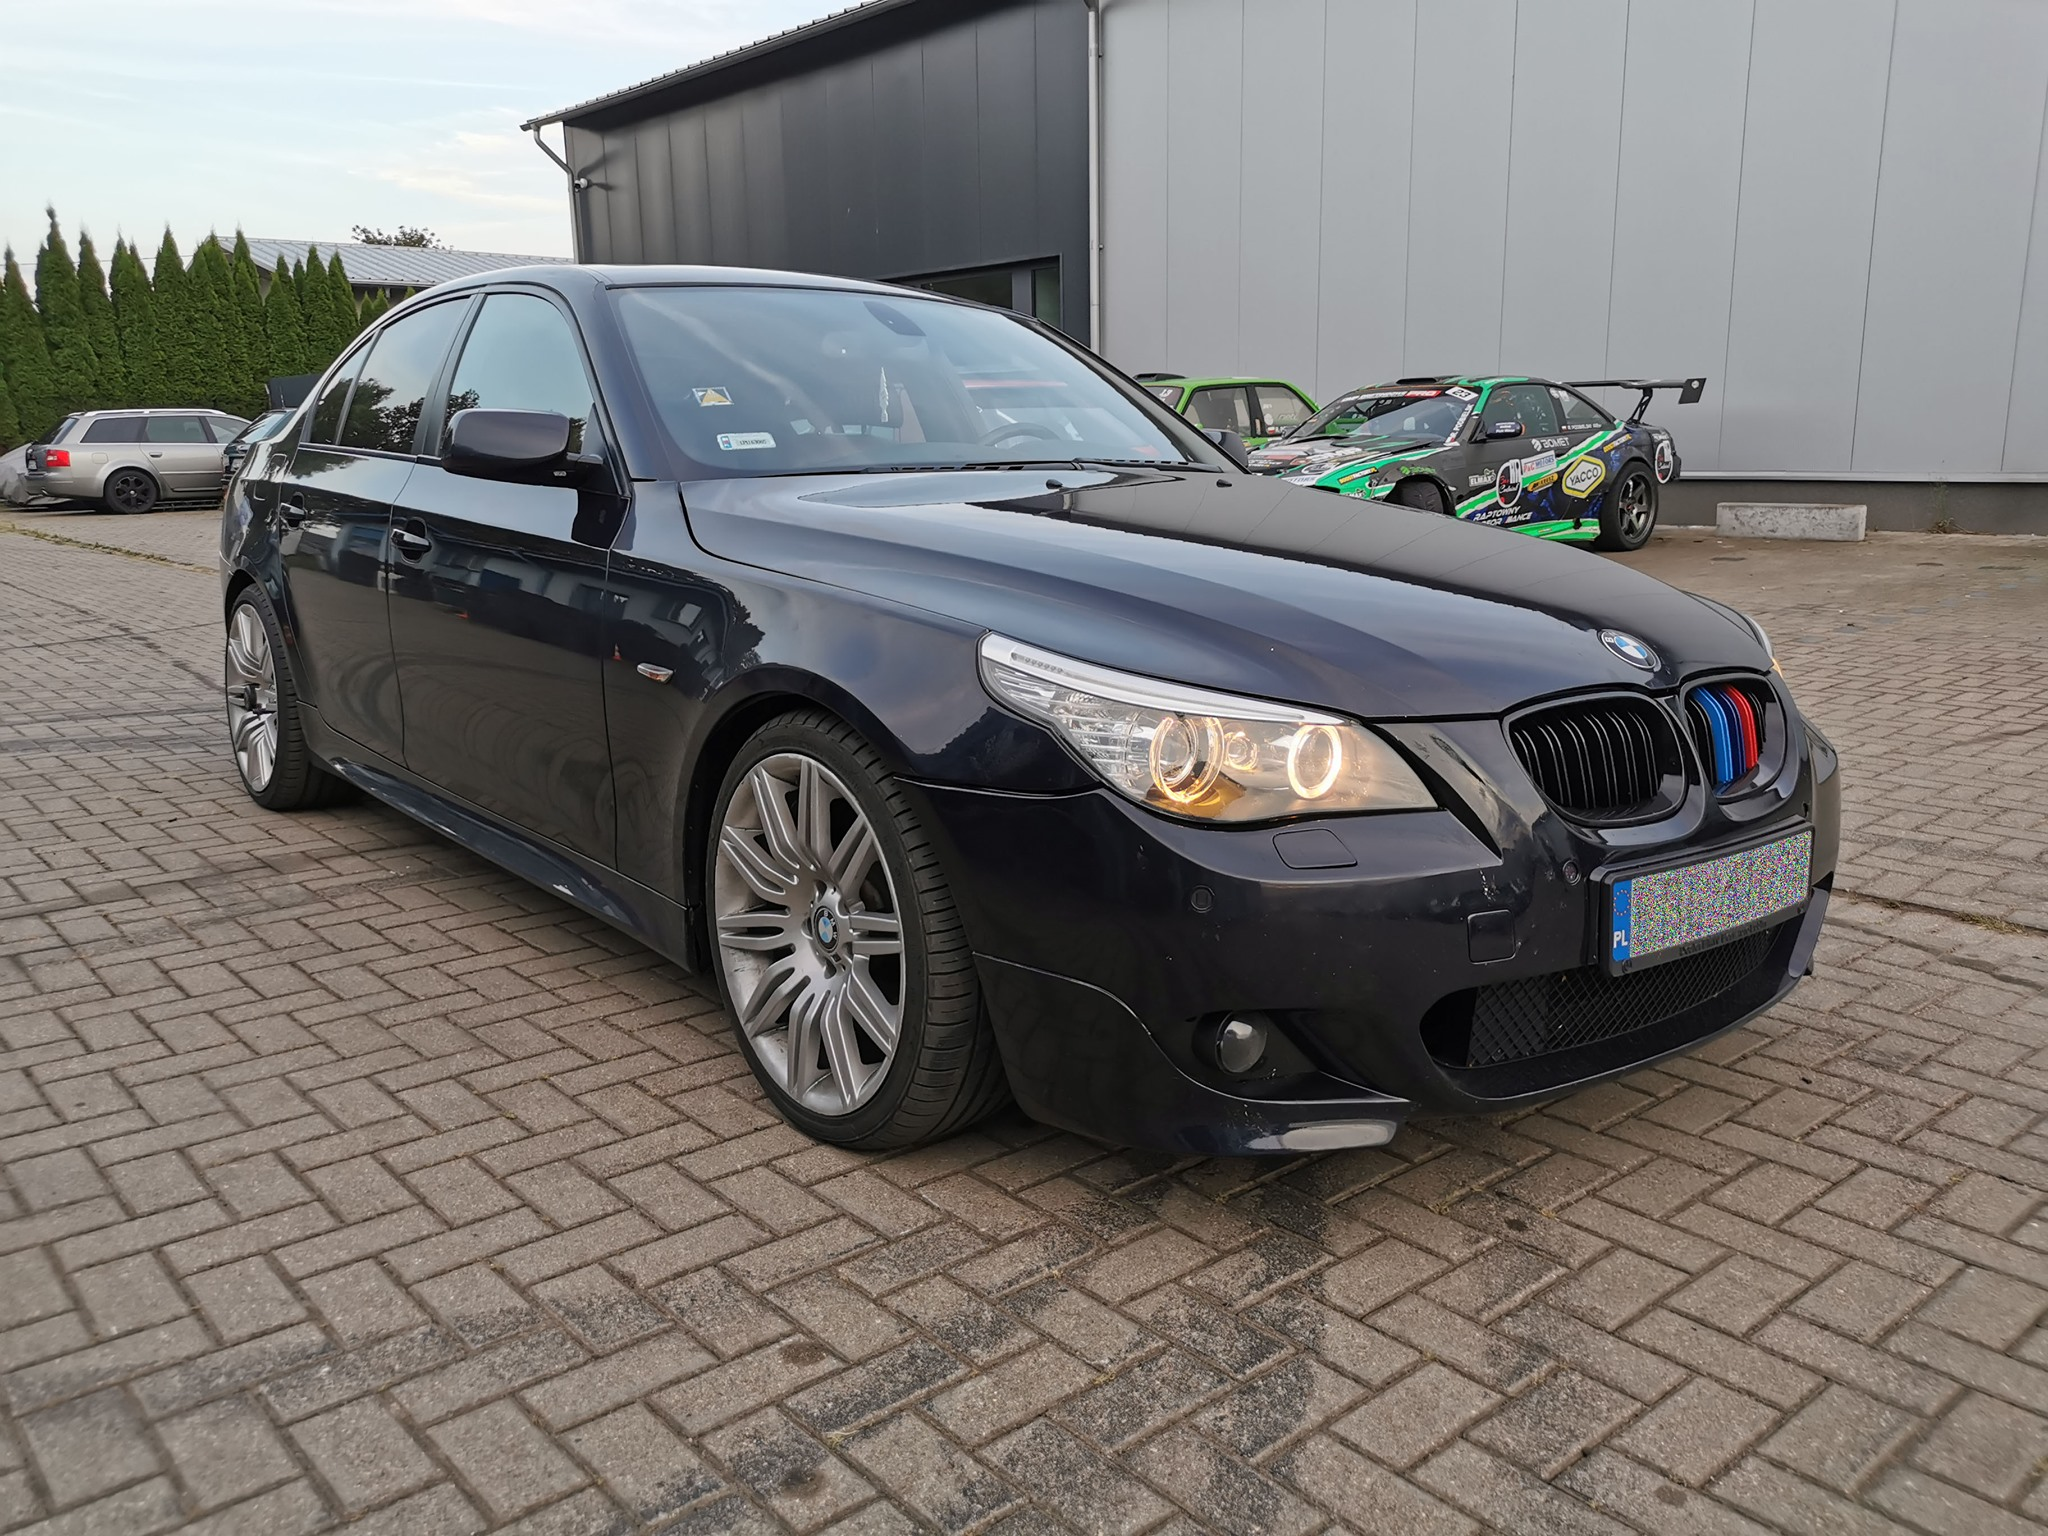 BMW E60 535D 272KM >> 364KM 731Nm